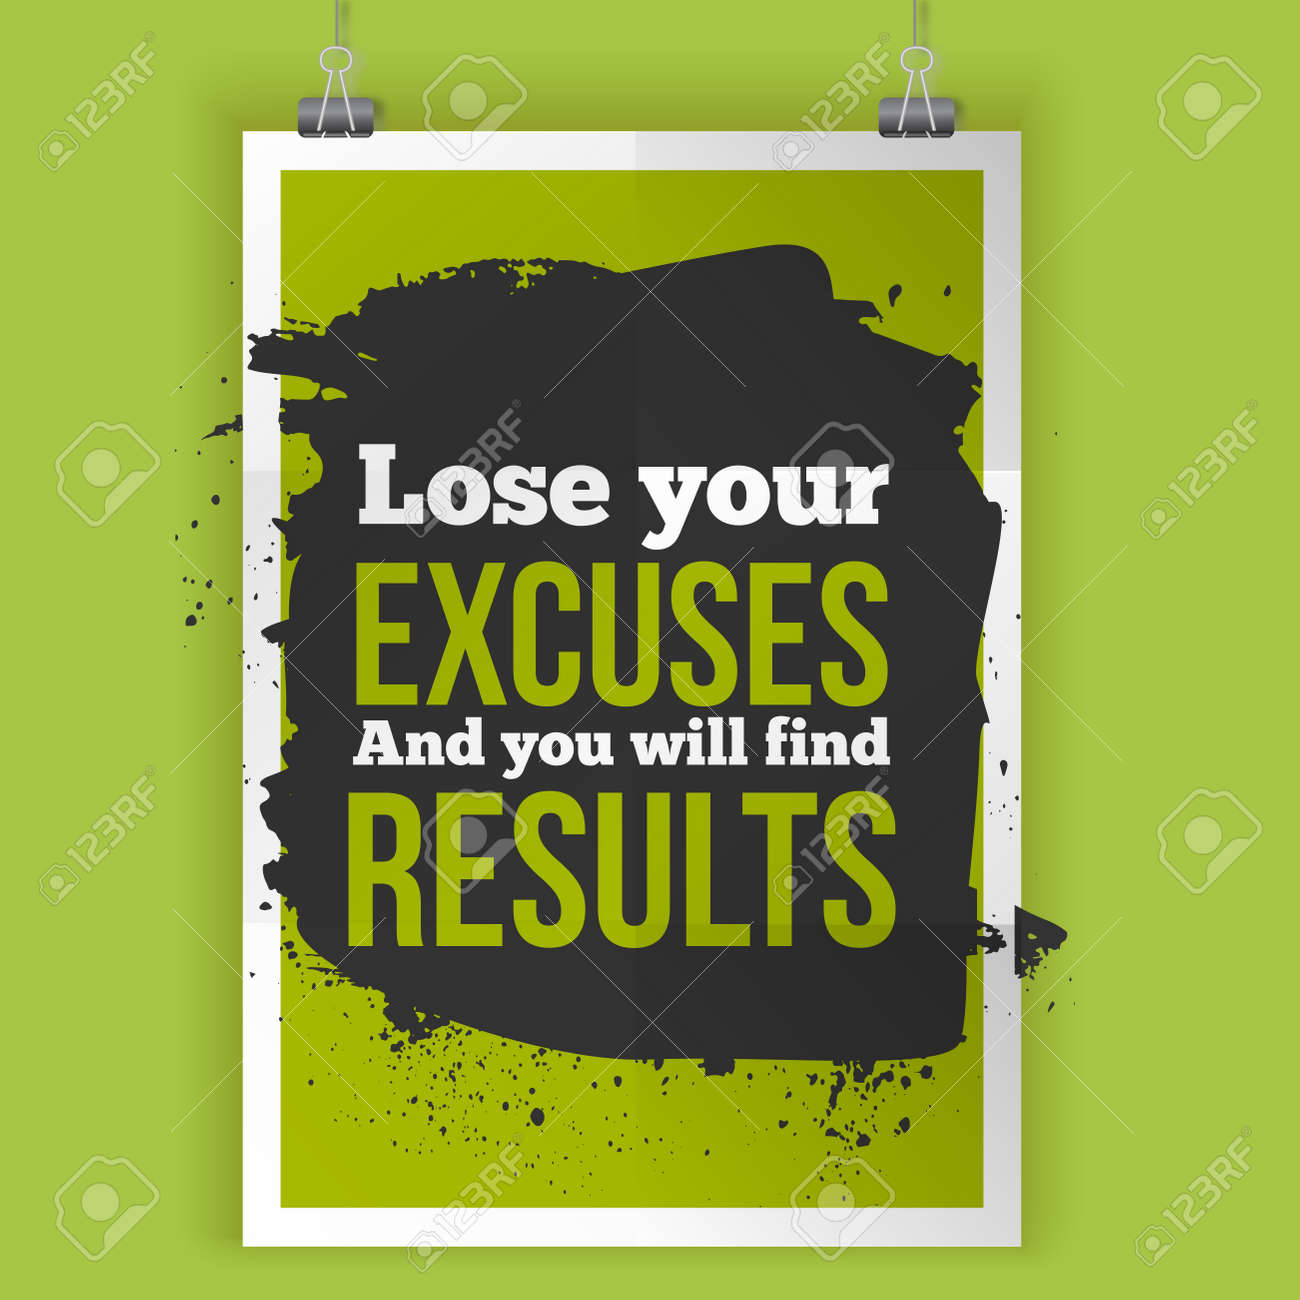 eacdceb8e5c8 Lose your excuses and you will find results. Inspirational motivational  quote poster mock up Stock